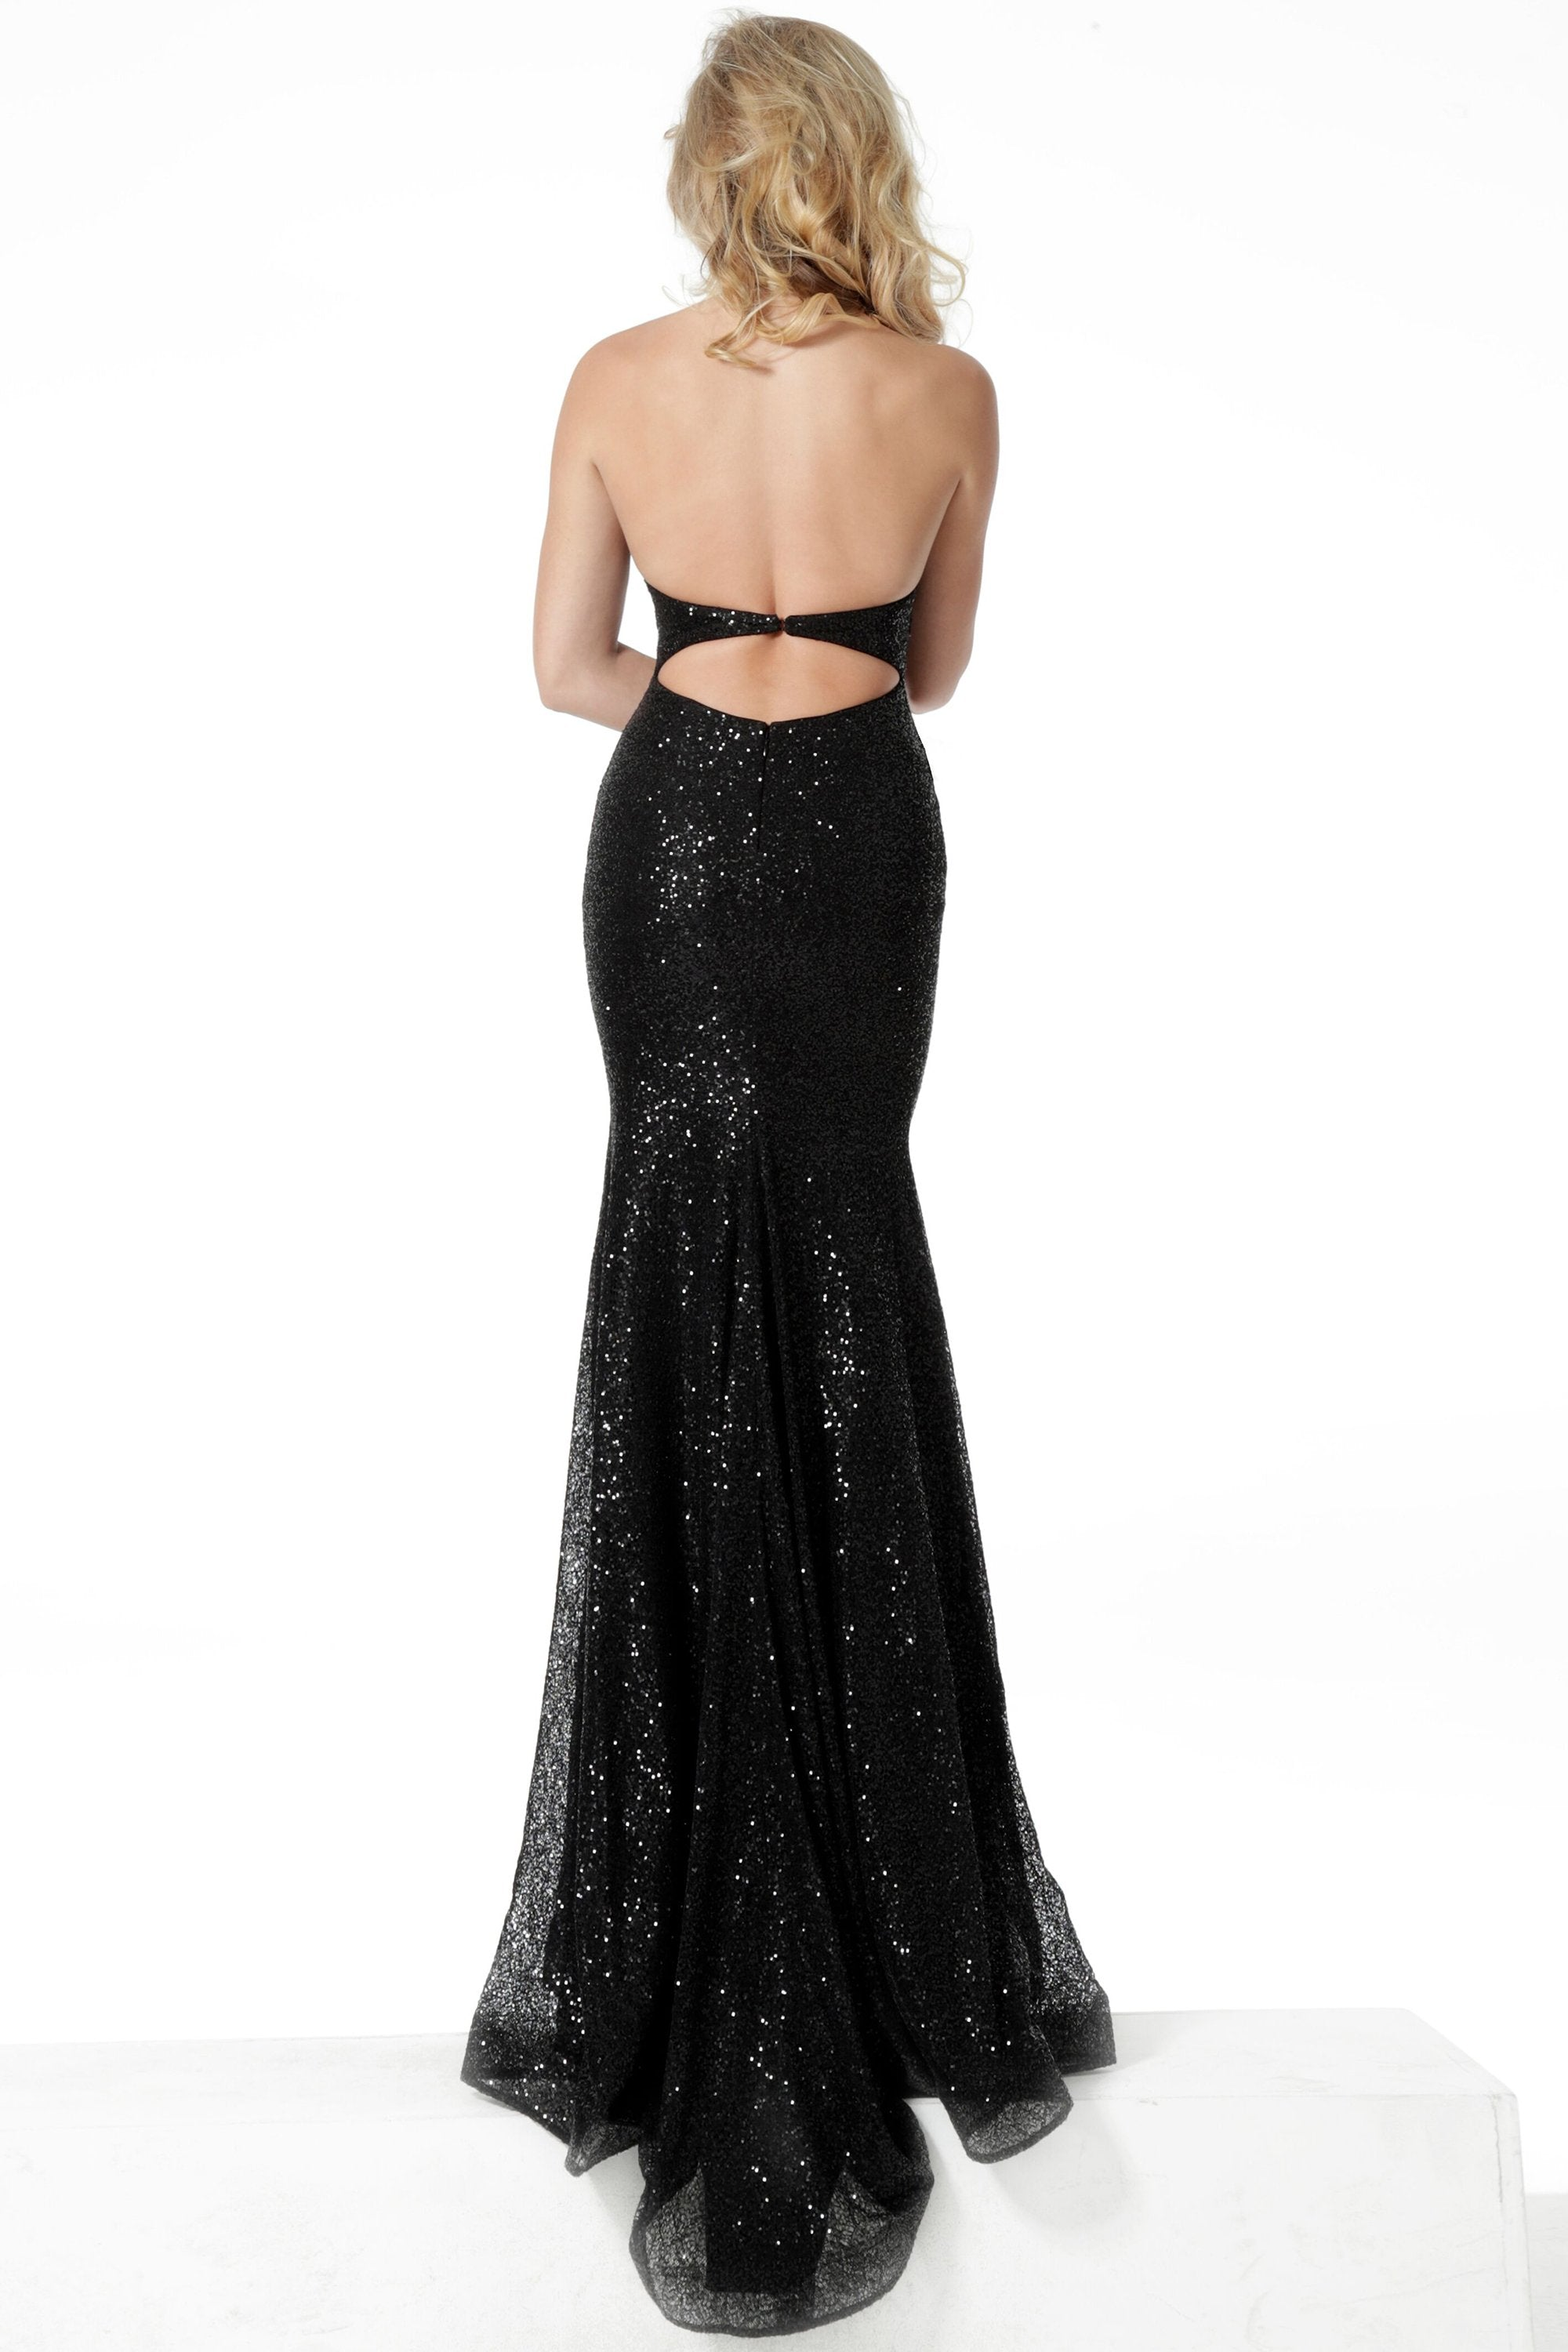 Jovani - 55184 Embellished Halter V-neck Trumpet Dress In Black